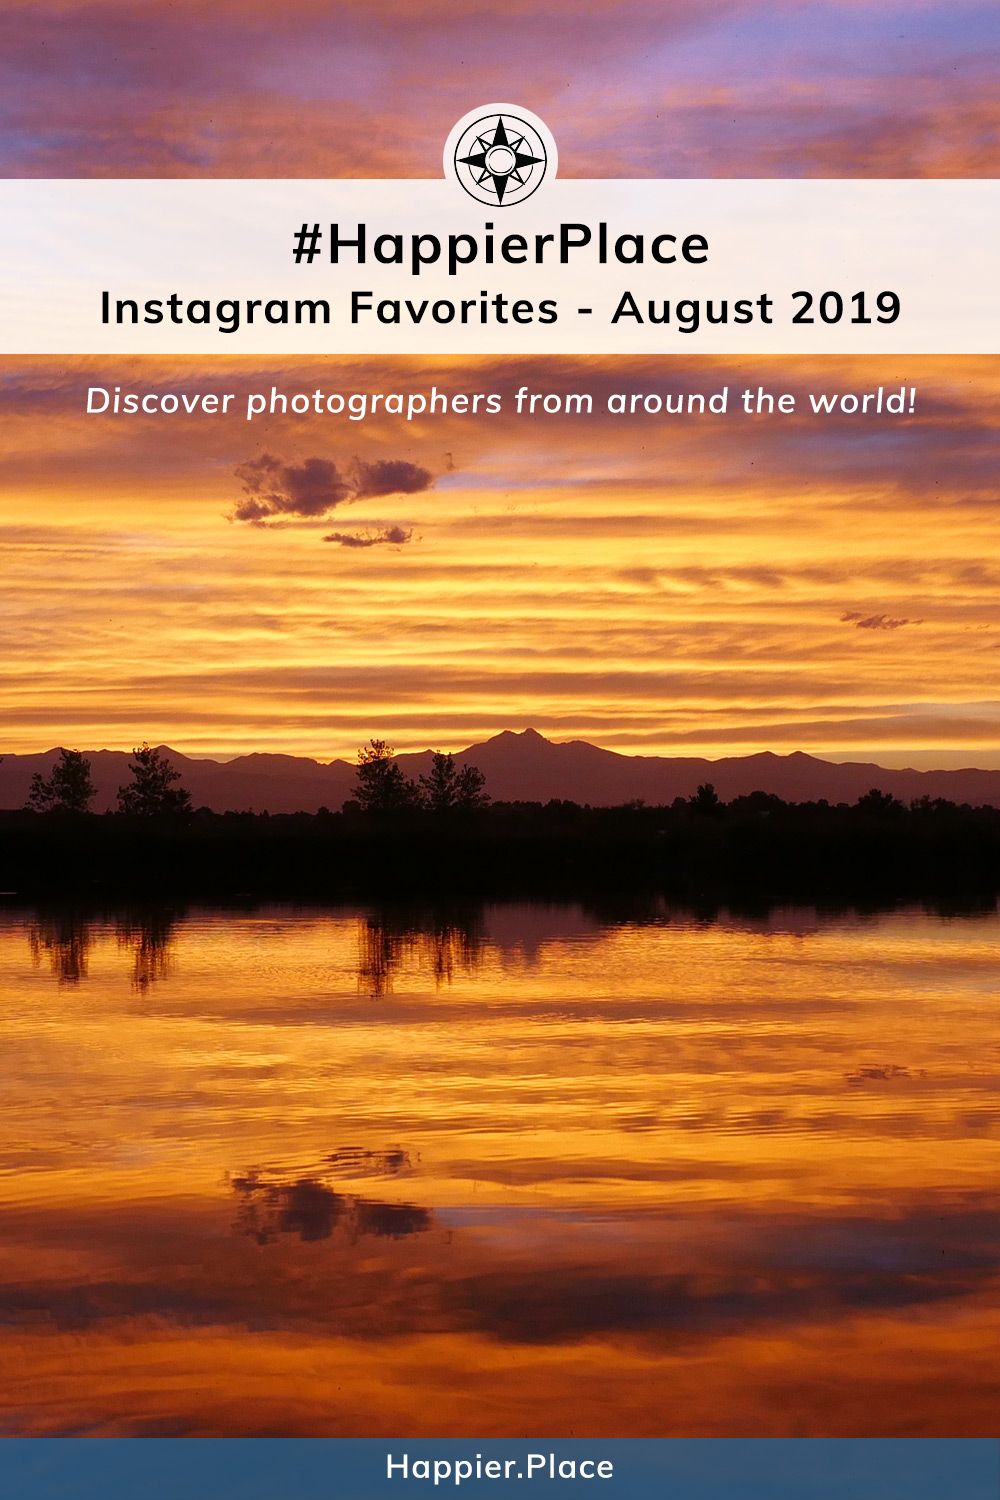 Instagram #HappierPlace August 2019 Favorites - represented by sunset reflection in St. Vrain State Park, Colorado, with Rocky Mountains backdrop. 